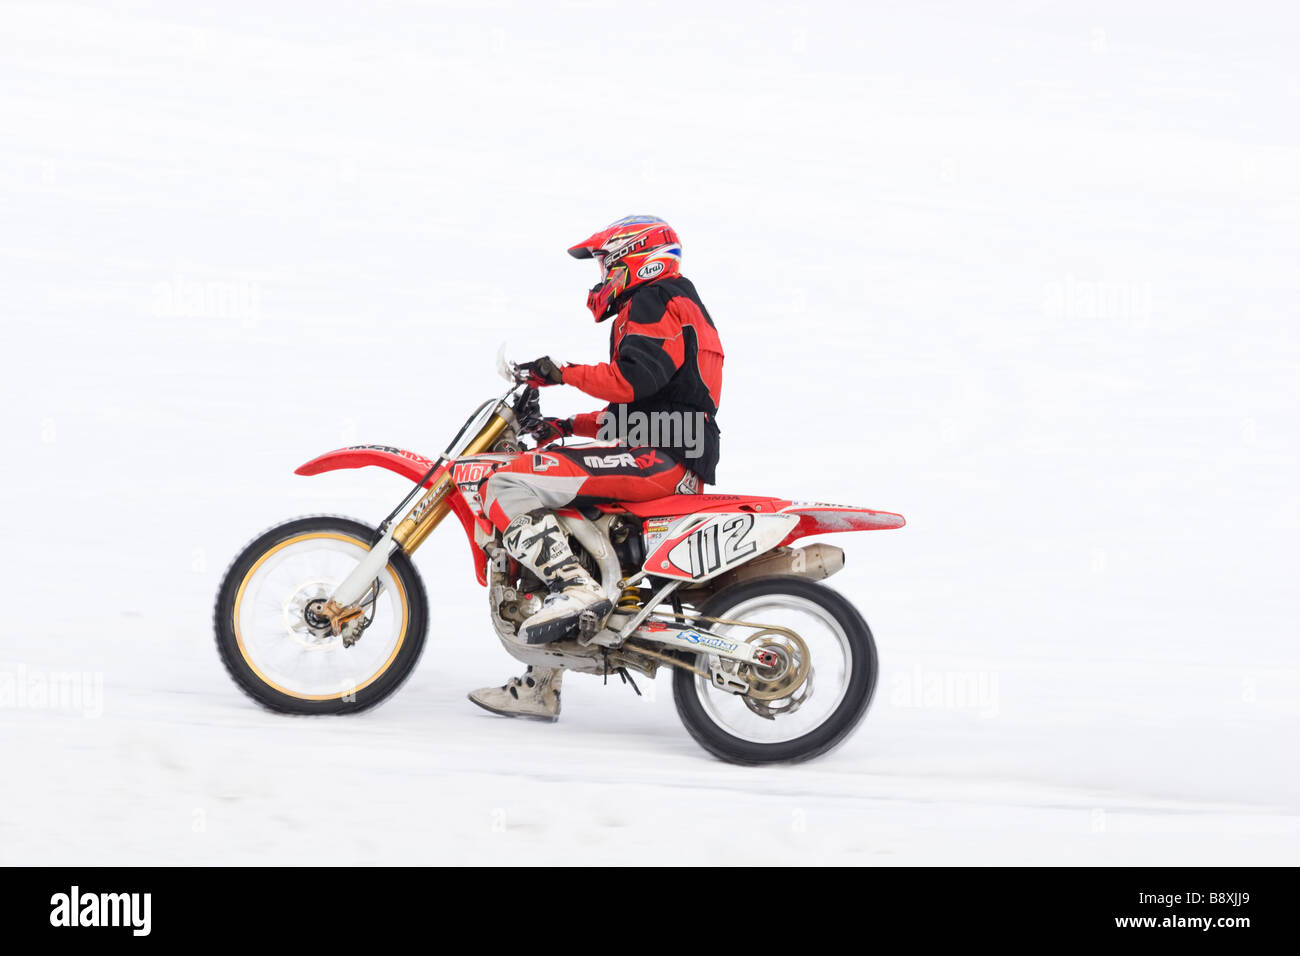 Winter races of motorcyclists It is photographed on a white background of snow - Stock Image